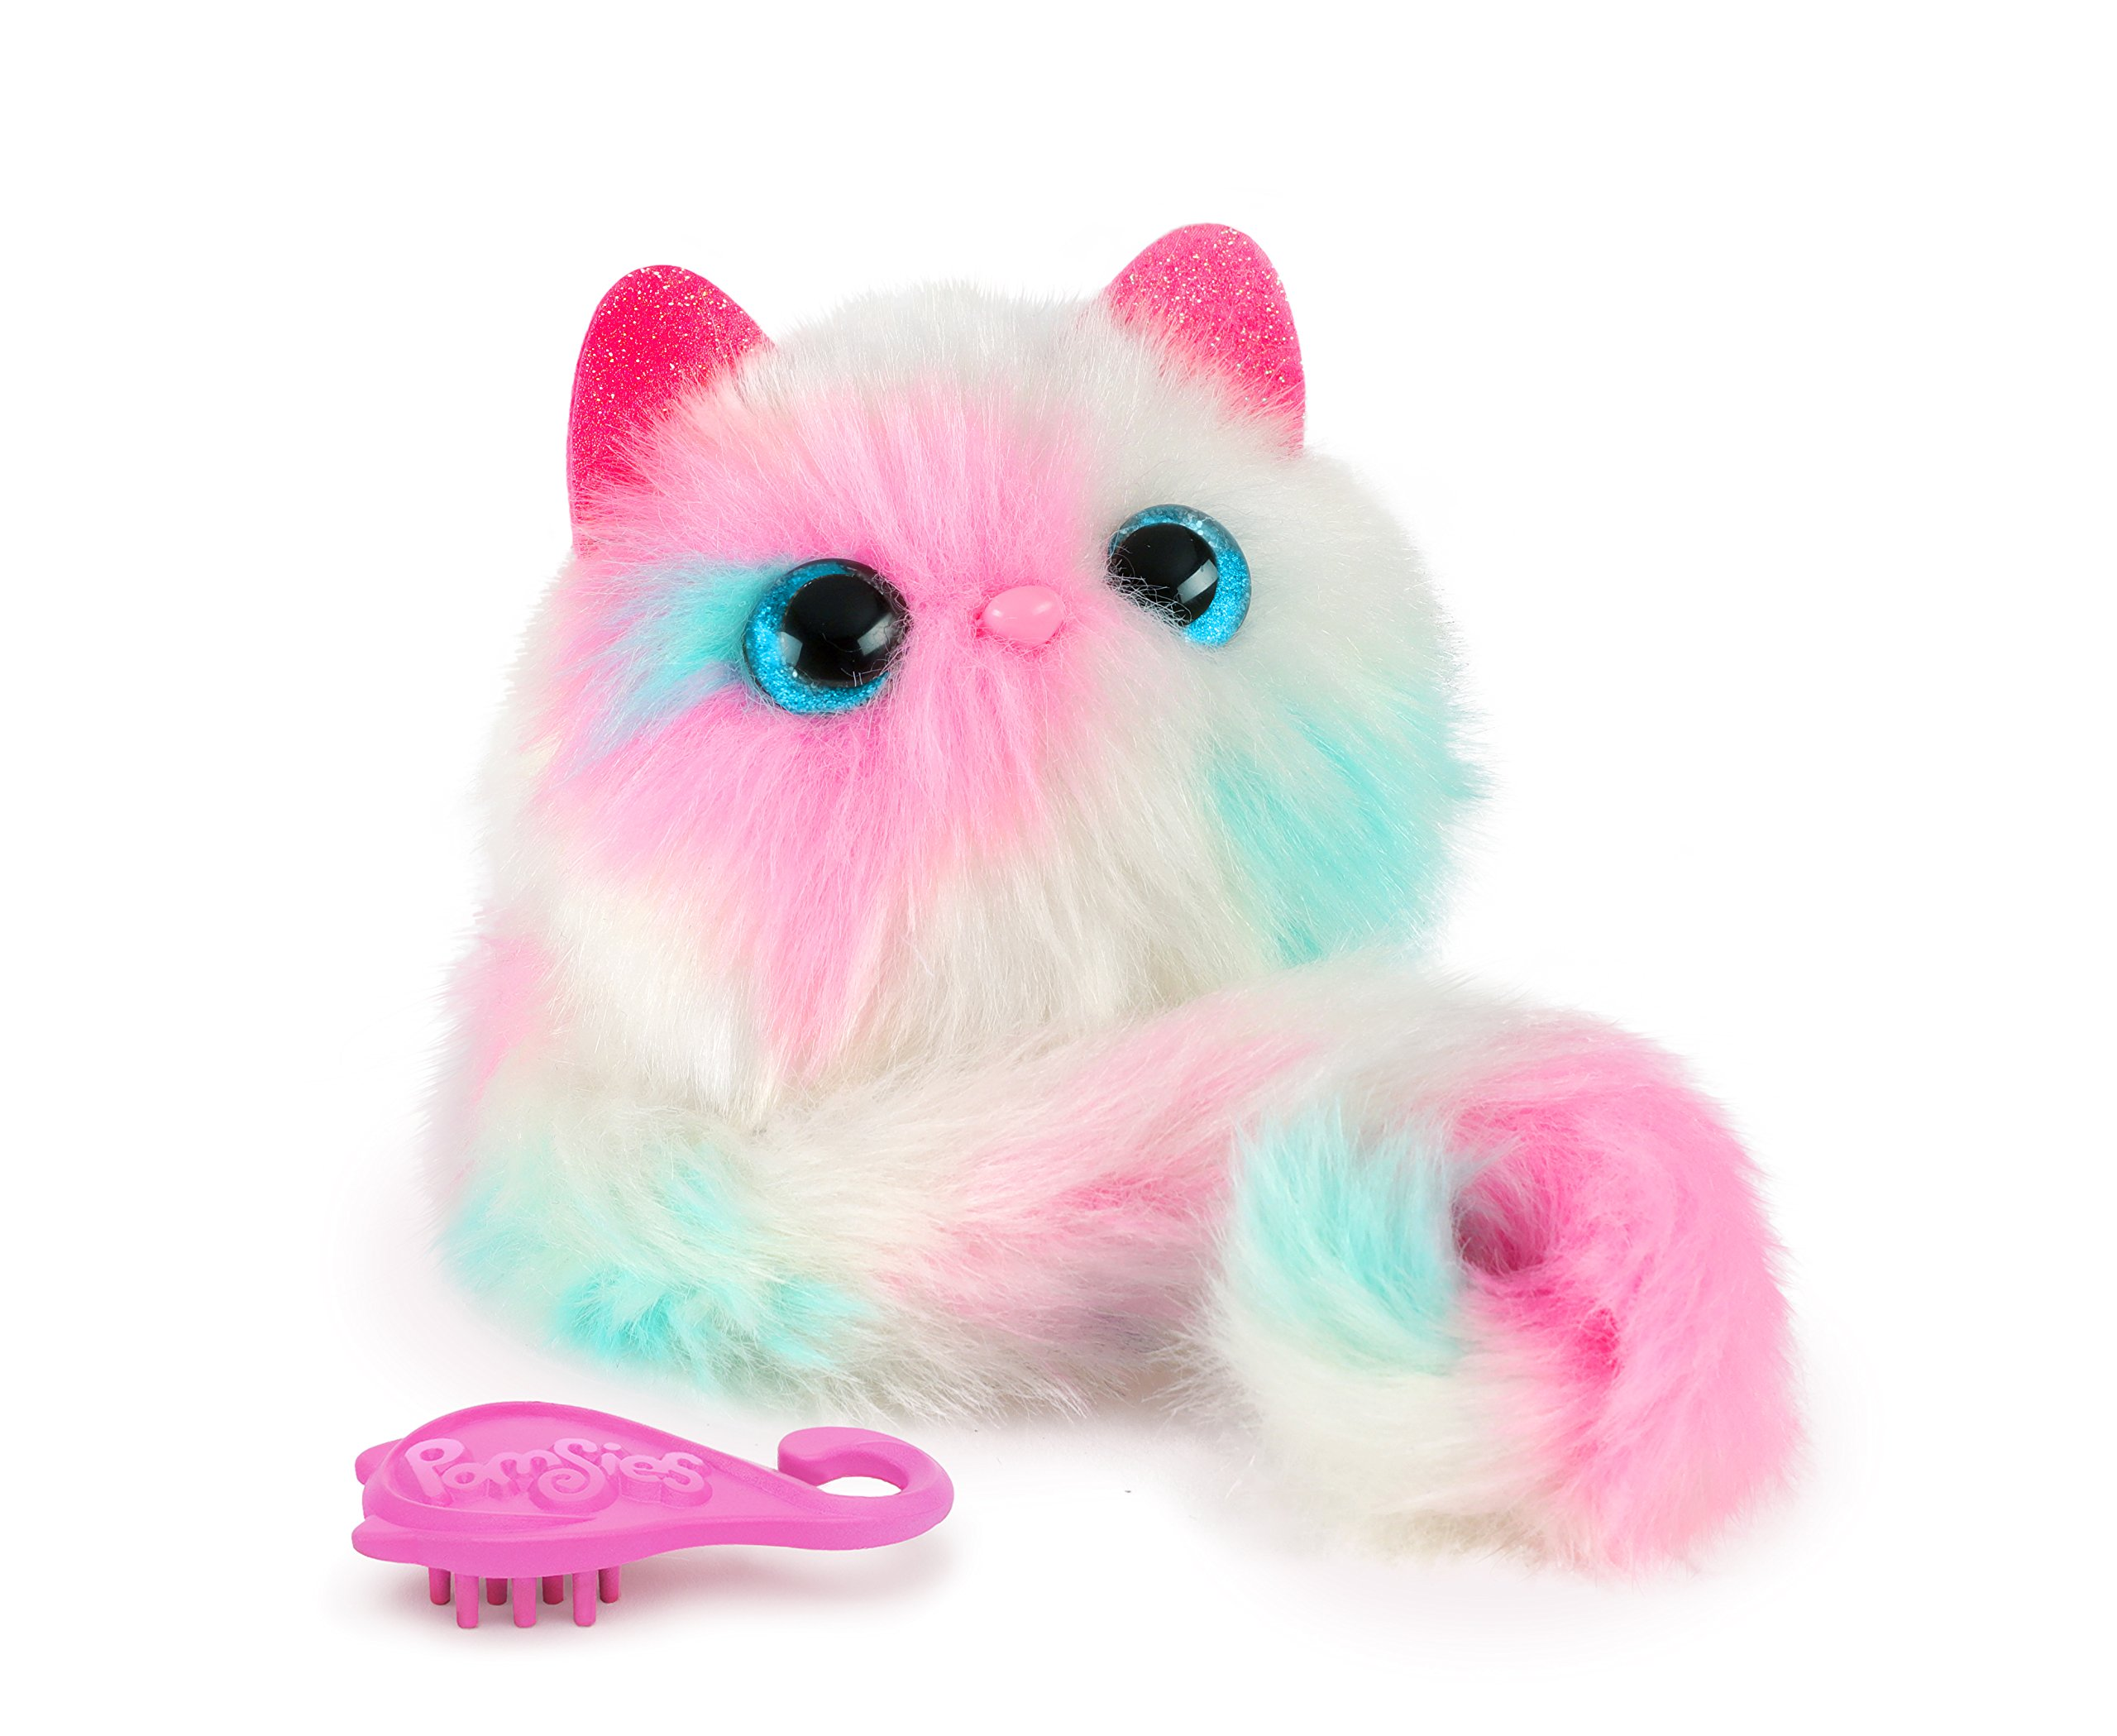 Pomsies Patches Plush Interactive Toys, White/Pink/Mint by Pomsies (Image #4)